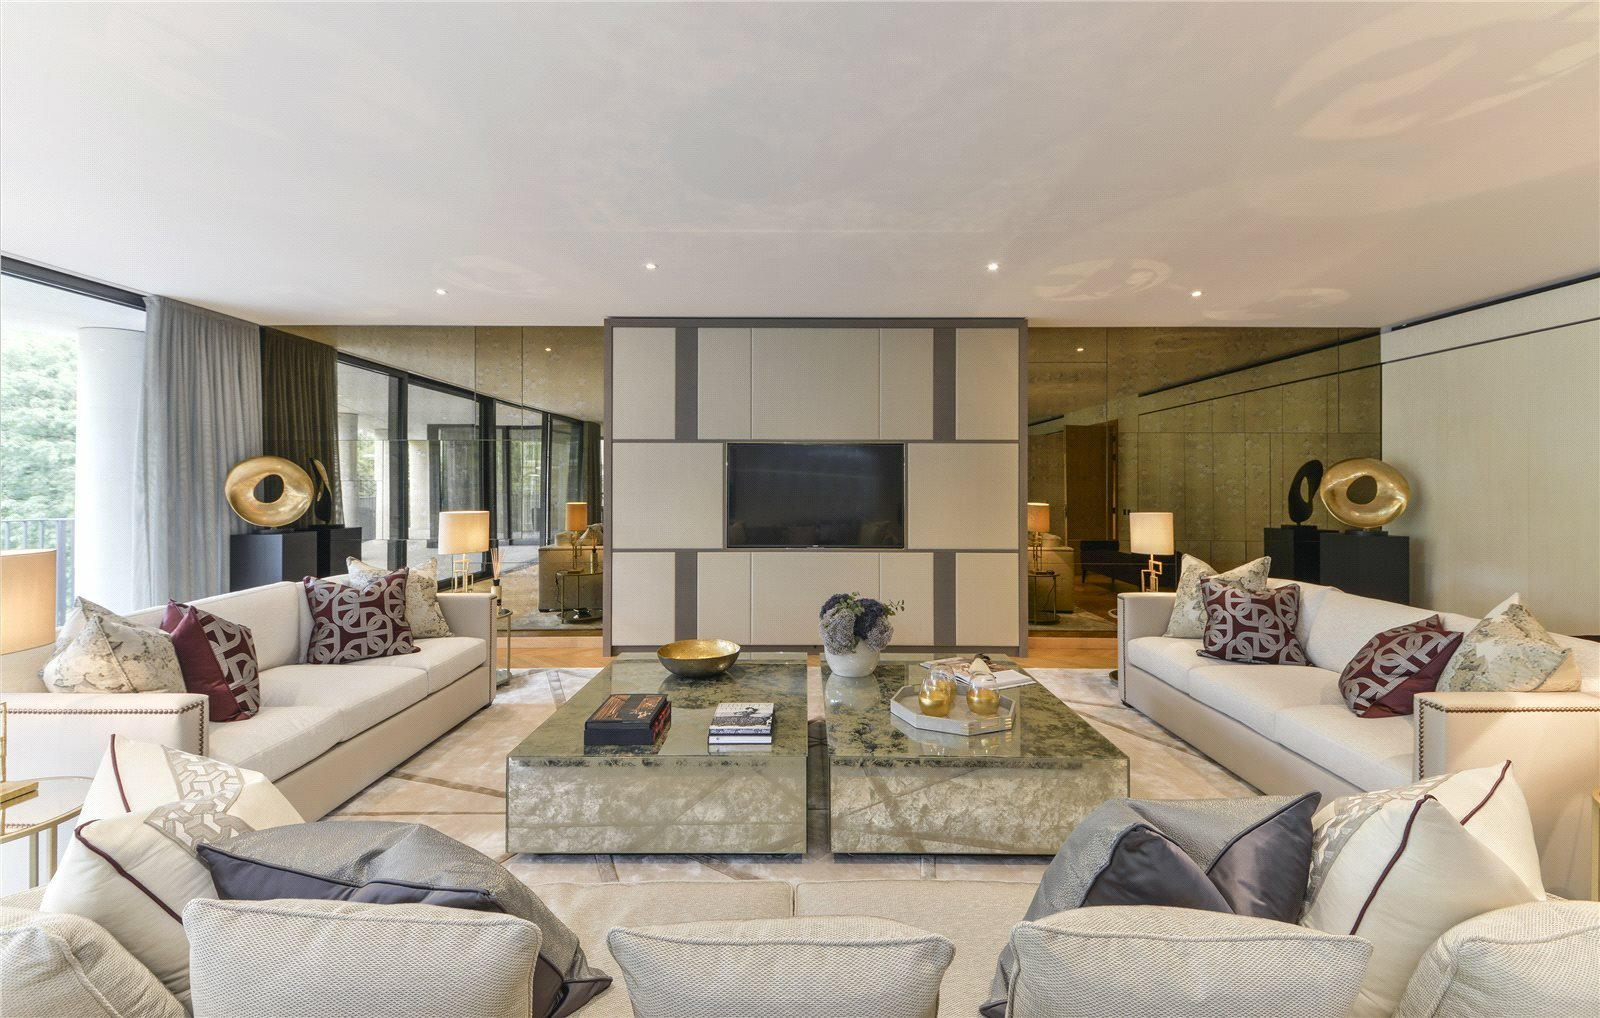 Condo in London, England, United Kingdom 1